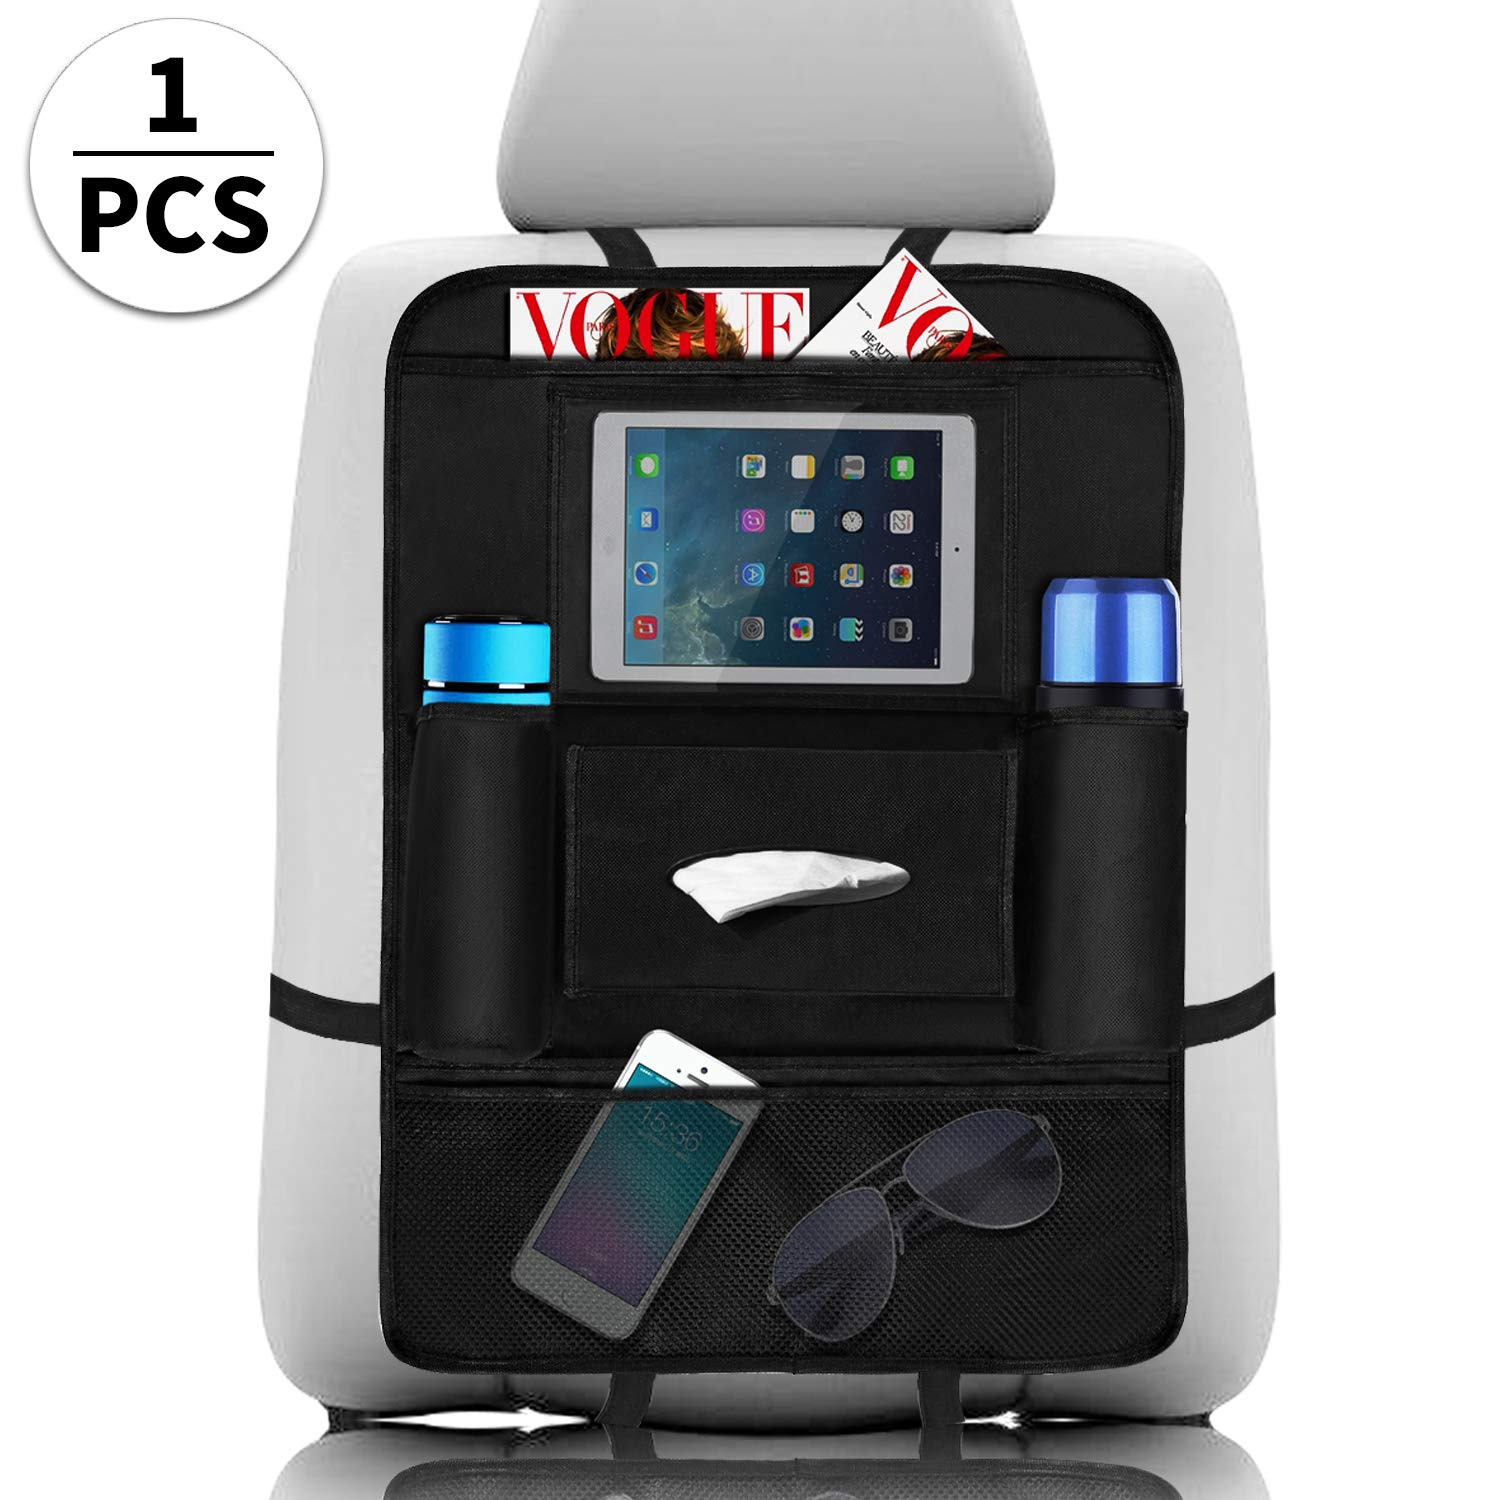 Car Back Seat Organiser 1Pcs, Waterproof Kick Mats Car Boot Organiser Seat Back Protectors with Multi-Pocket for Bottles, Kids Toy Storage, Tissue Boxes, 10'' iPad Tablet Touch Screen Holder Cosy Life